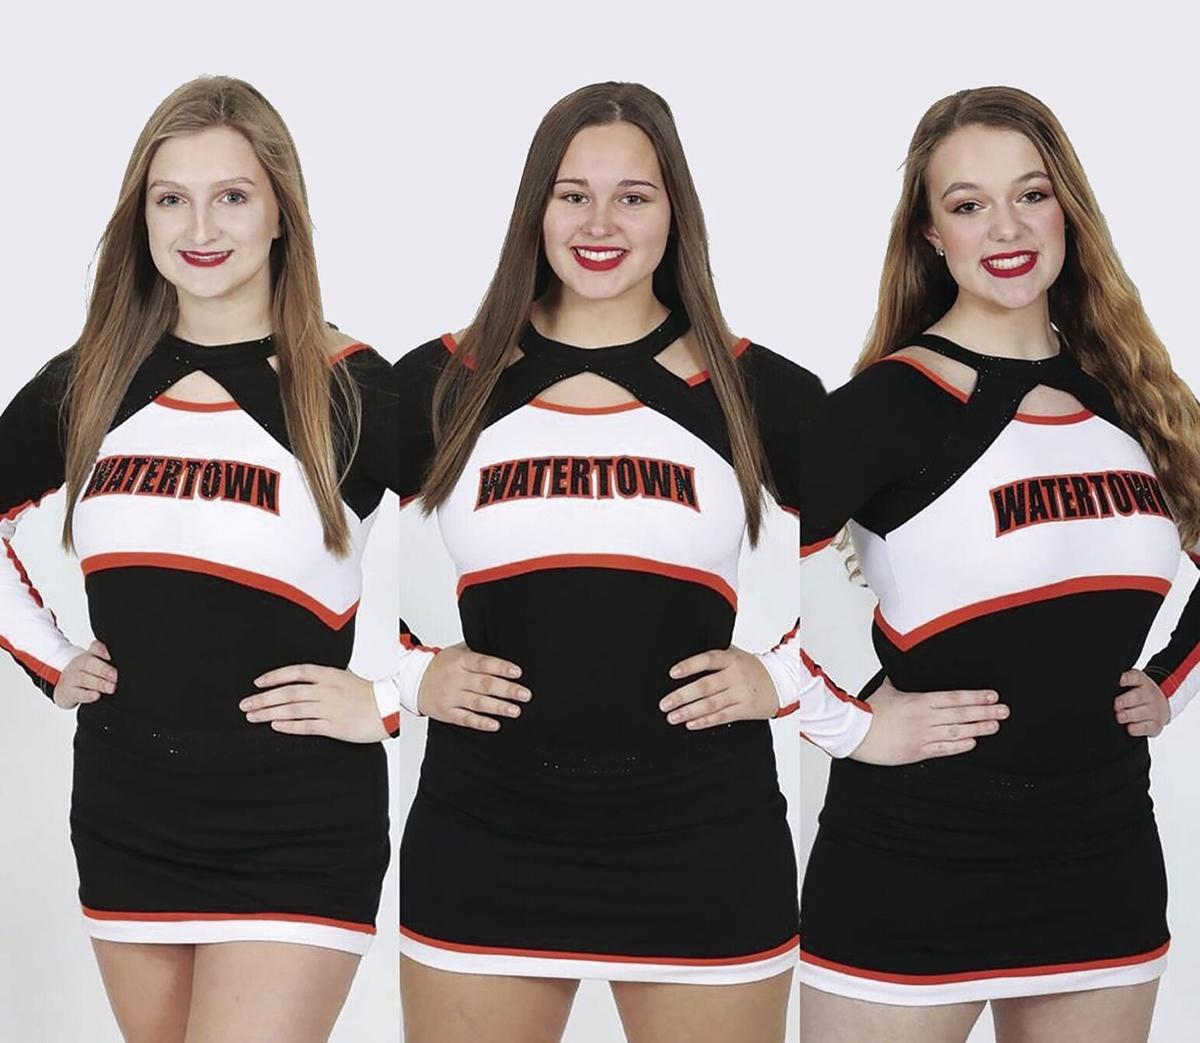 """WHS Cheerleaders Affected by DPH, CIACTussle: """"We Will Be There To Help Raise School Spirit"""""""